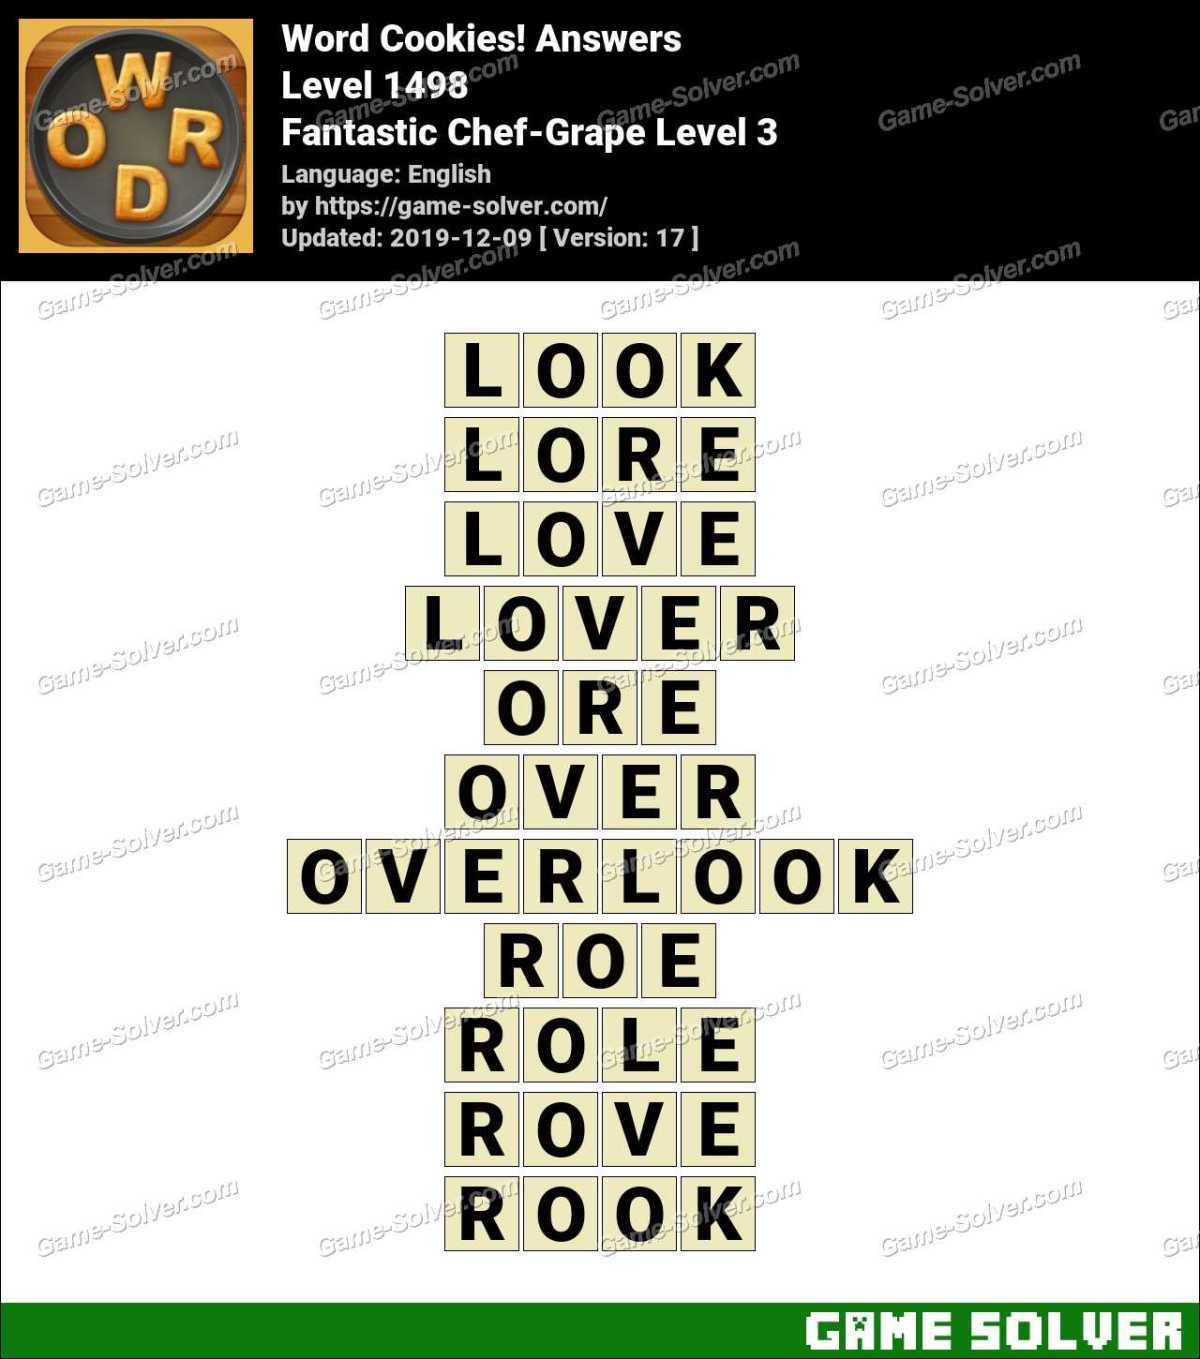 Word Cookies Fantastic Chef-Grape Level 3 Answers